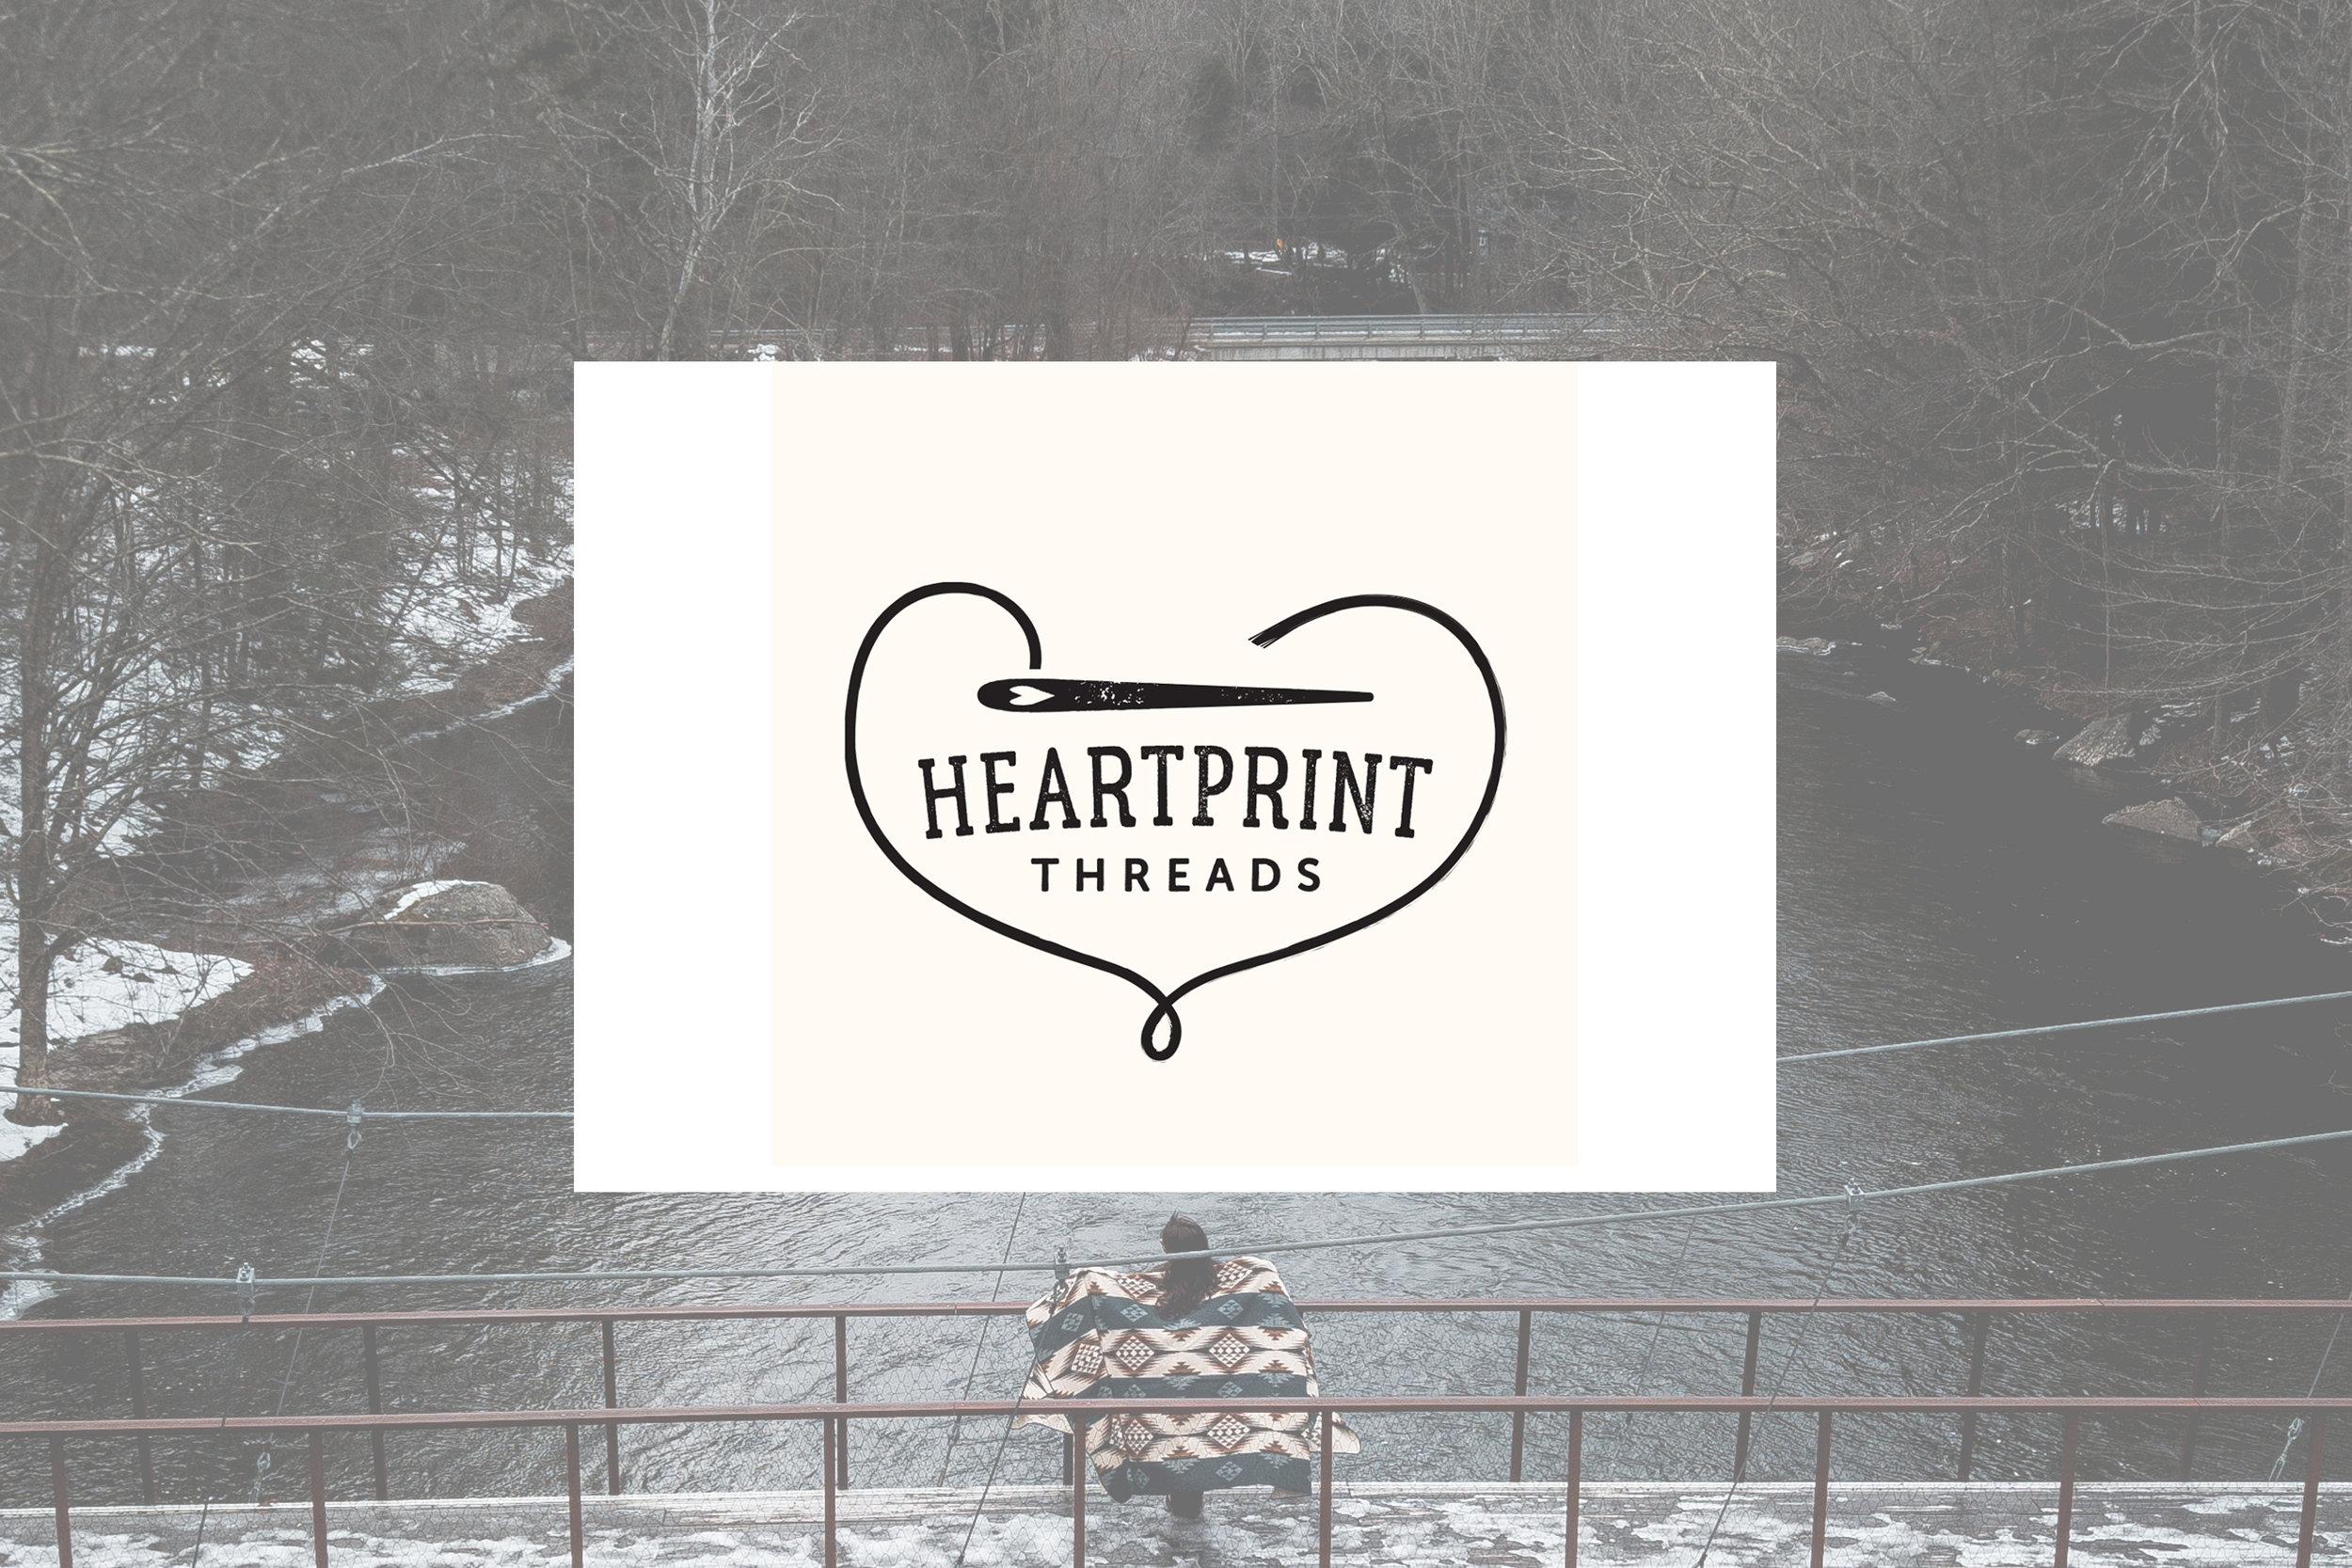 Heartprint Threads - Product line content for company's regional social channels